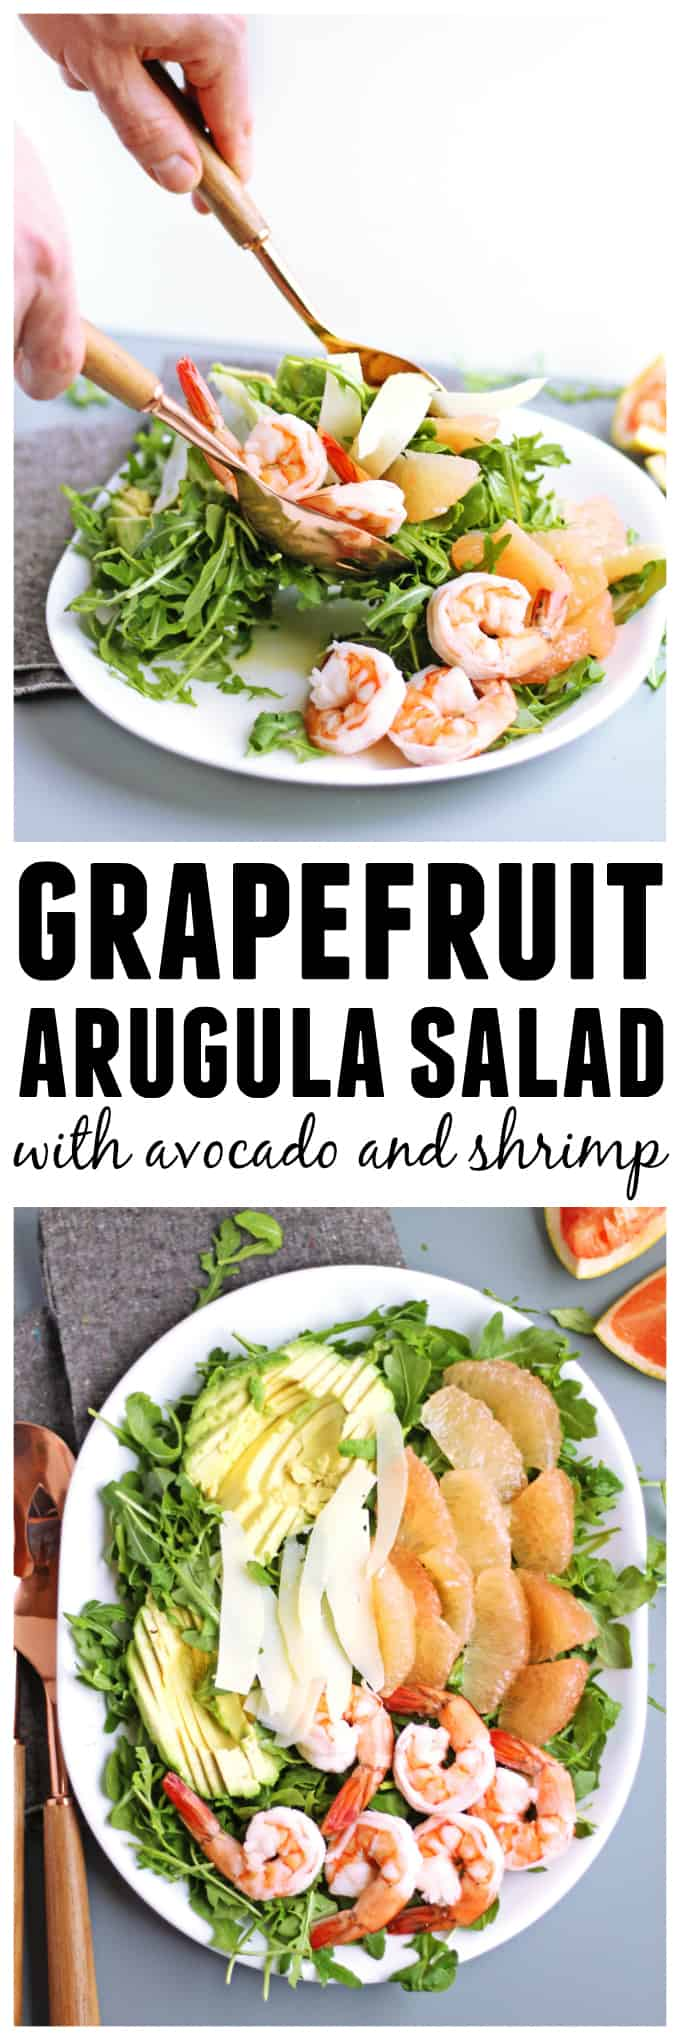 Grapefruit arugula salad with avocado and shrimp! Quick and easy recipe for a delicious, healthy, winter salad. The perfect weeknight dinner! - Rhubarbarians